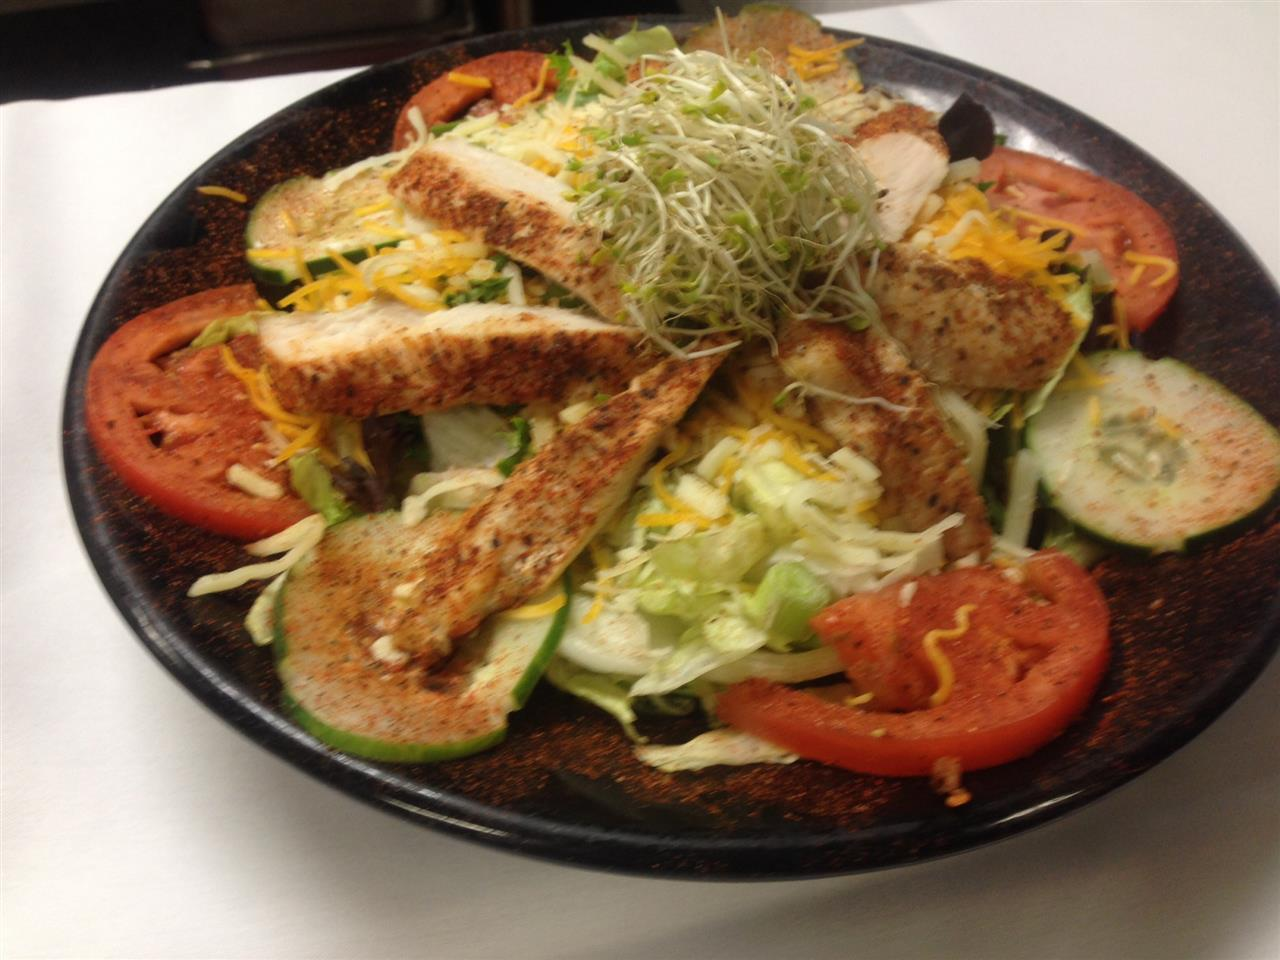 Cajun Chicken Breast Salad